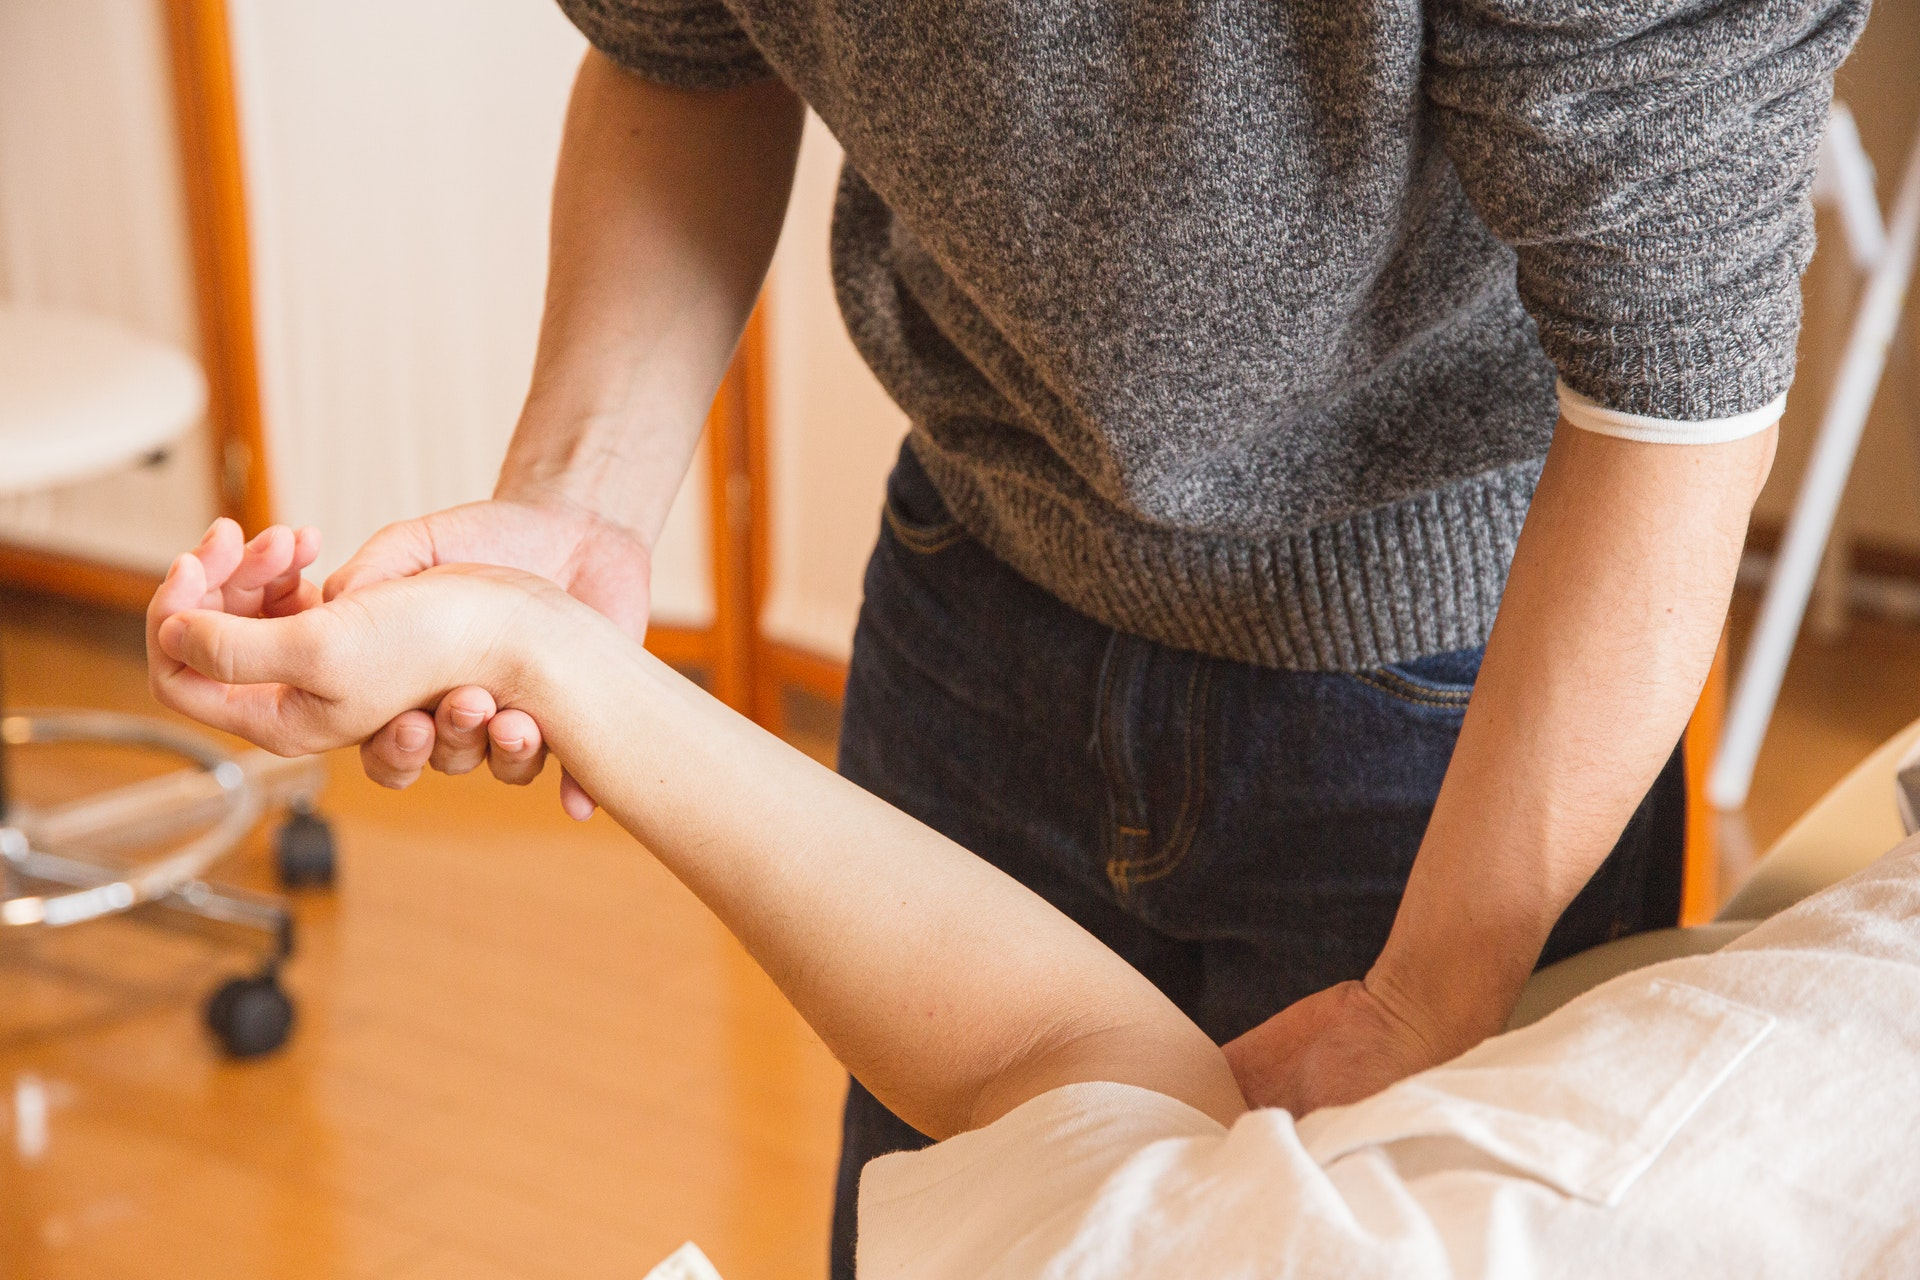 4 Causes of joint pain and what you can do to alleviate it